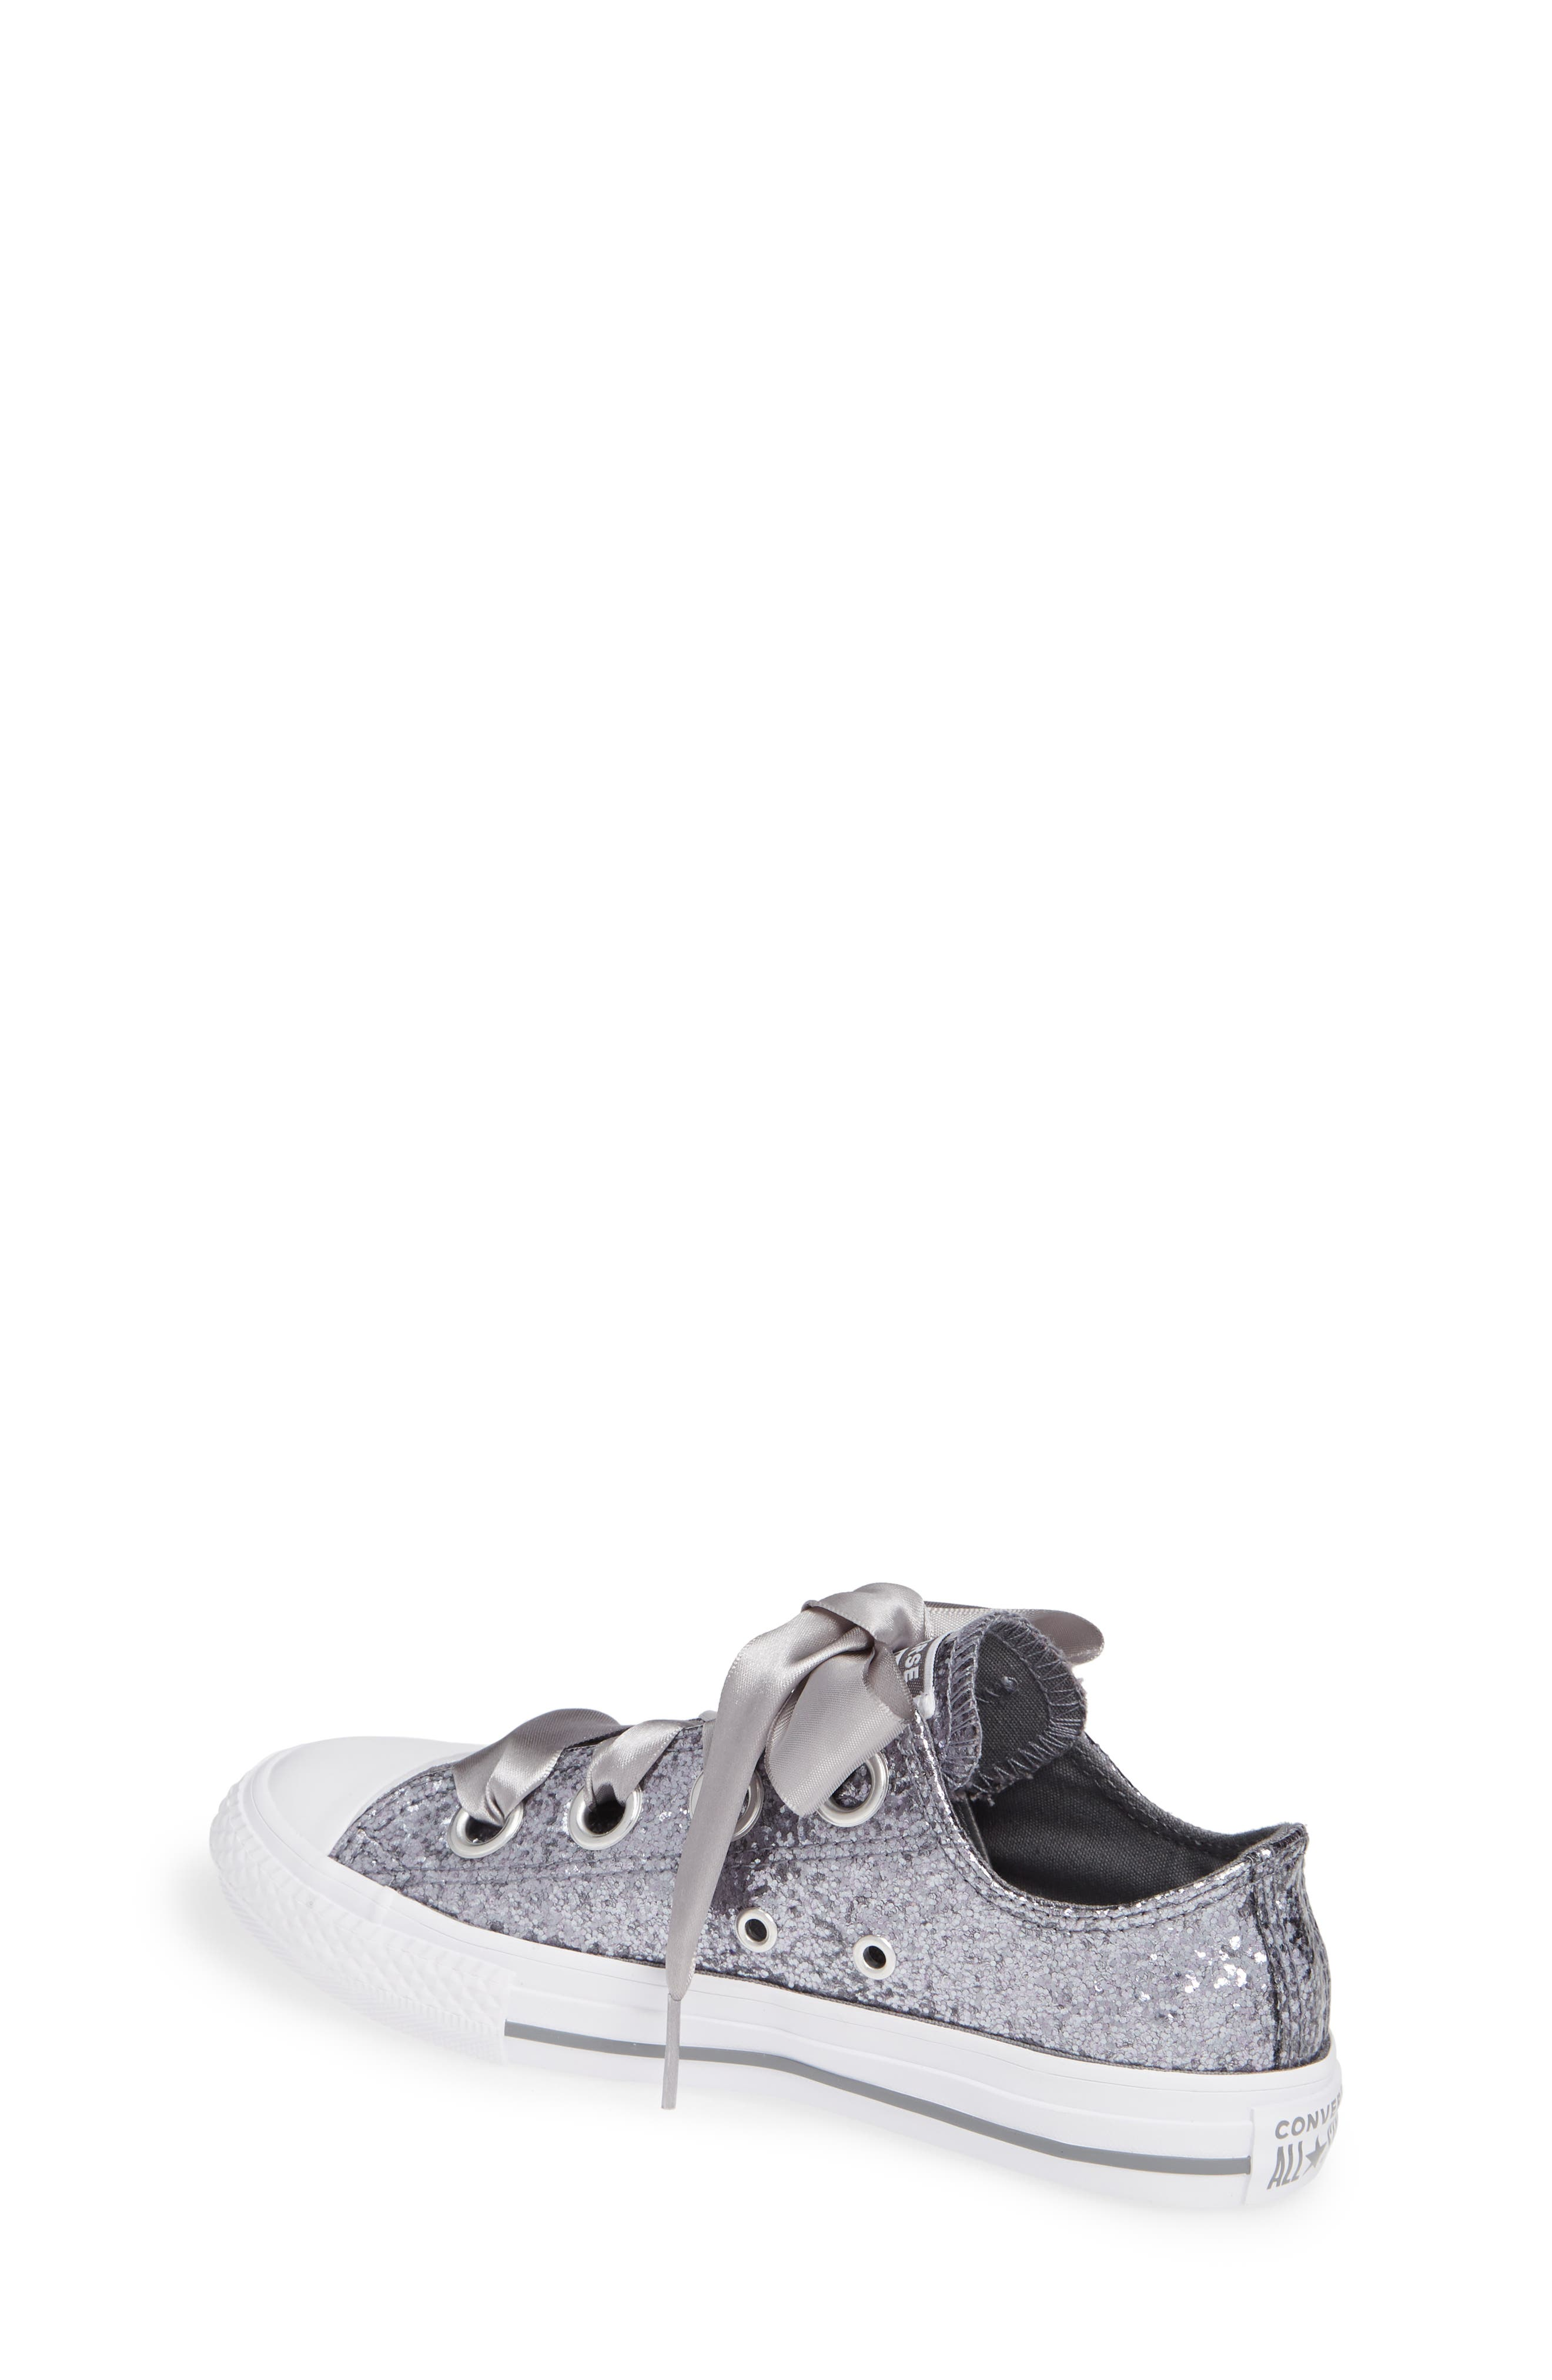 CONVERSE, Chuck Taylor<sup>®</sup> All Star<sup>®</sup> Glitter Big Eyelet Ox Sneaker, Alternate thumbnail 2, color, 020